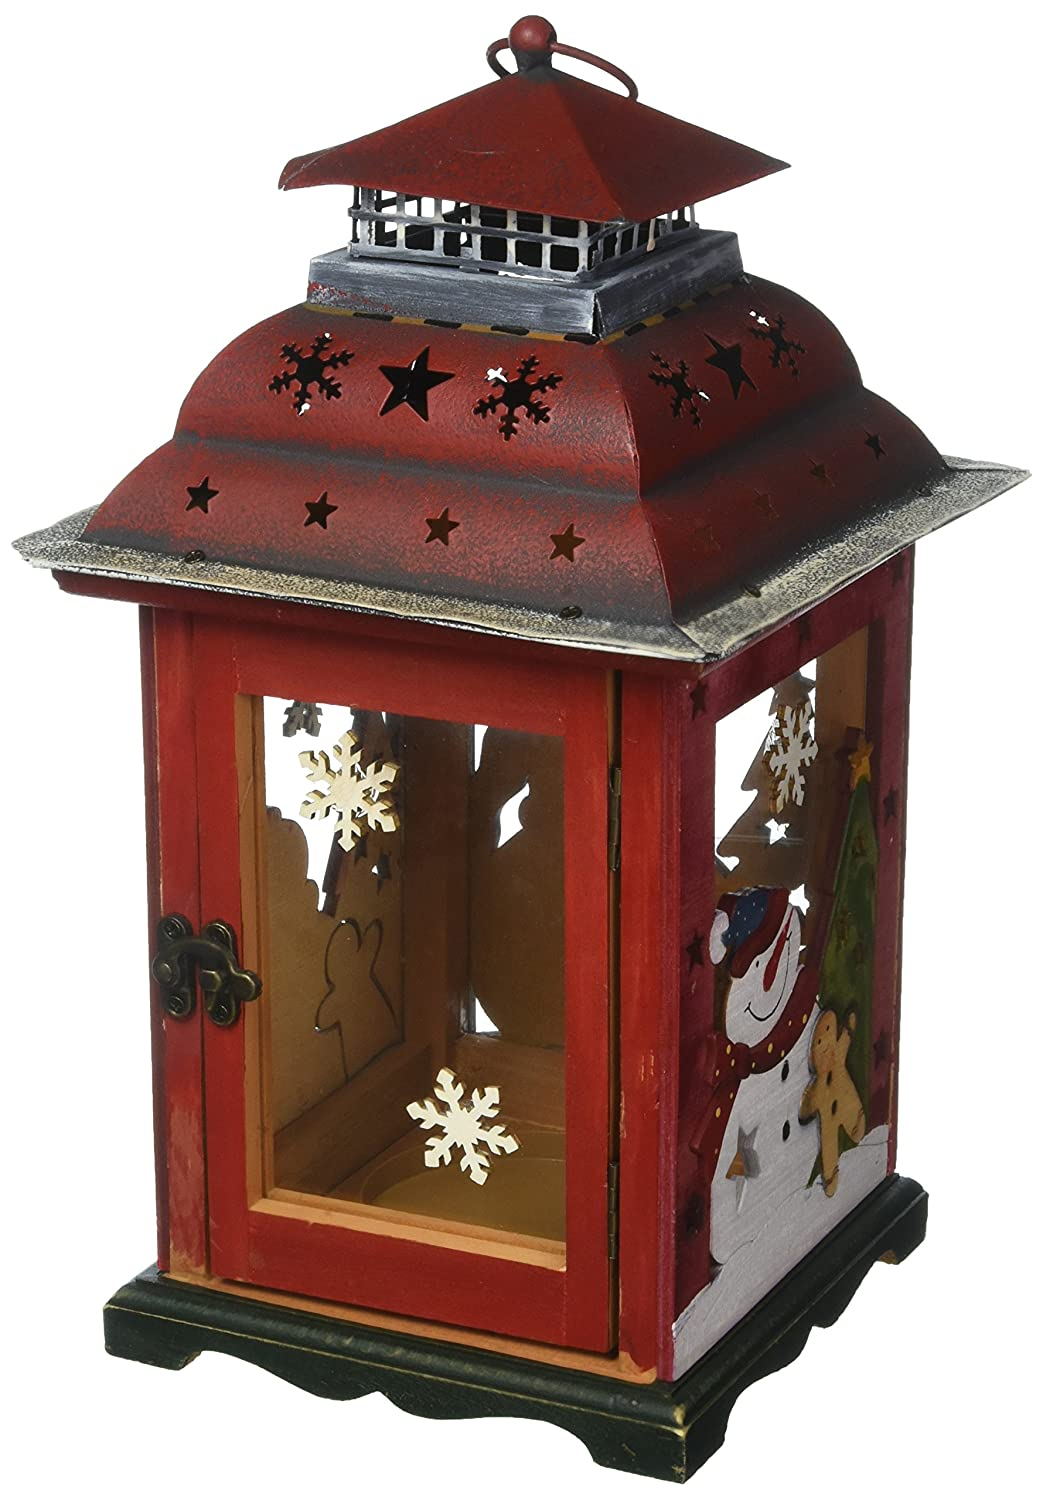 Clovers Garden 13 Christmas Wooden Snowman Lantern Decoration Vintage Red Decorative Holiday Table Centerpiece Or Hanging Lantern For Pillar Candle